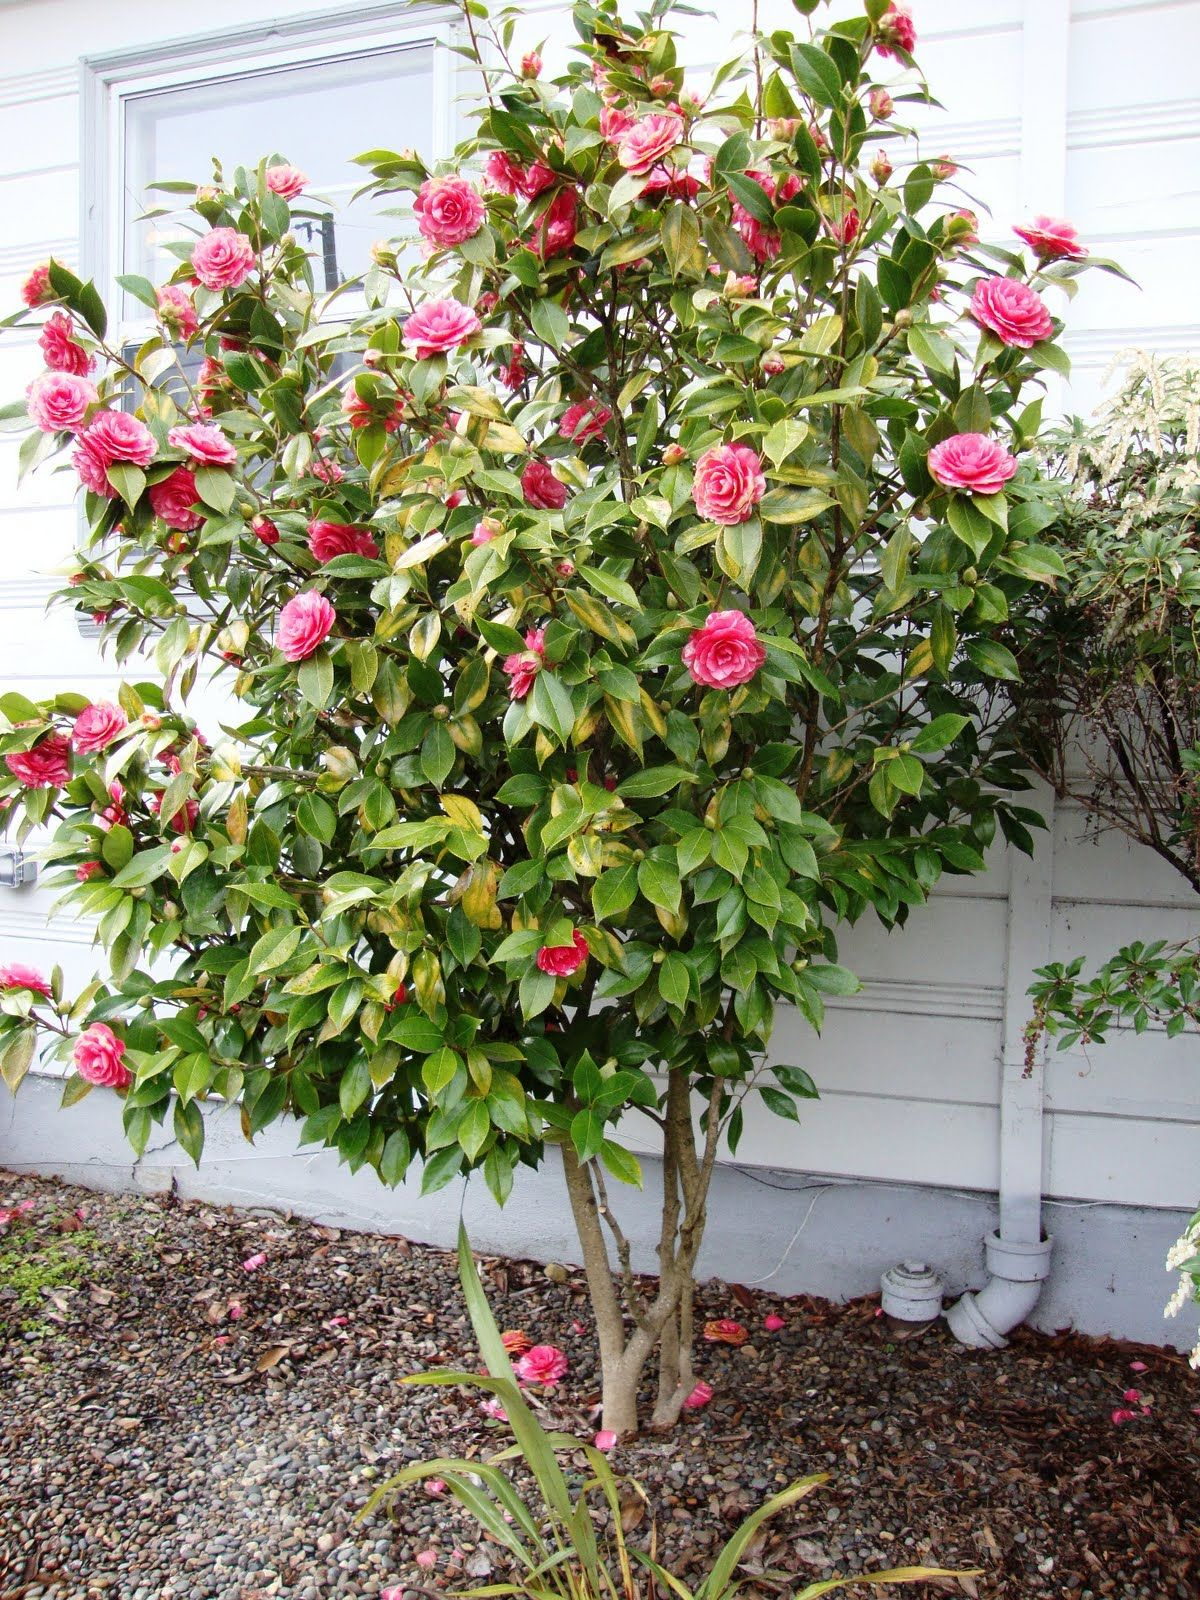 camellia shaped into a tree only grows in zones 7 9 but blooms